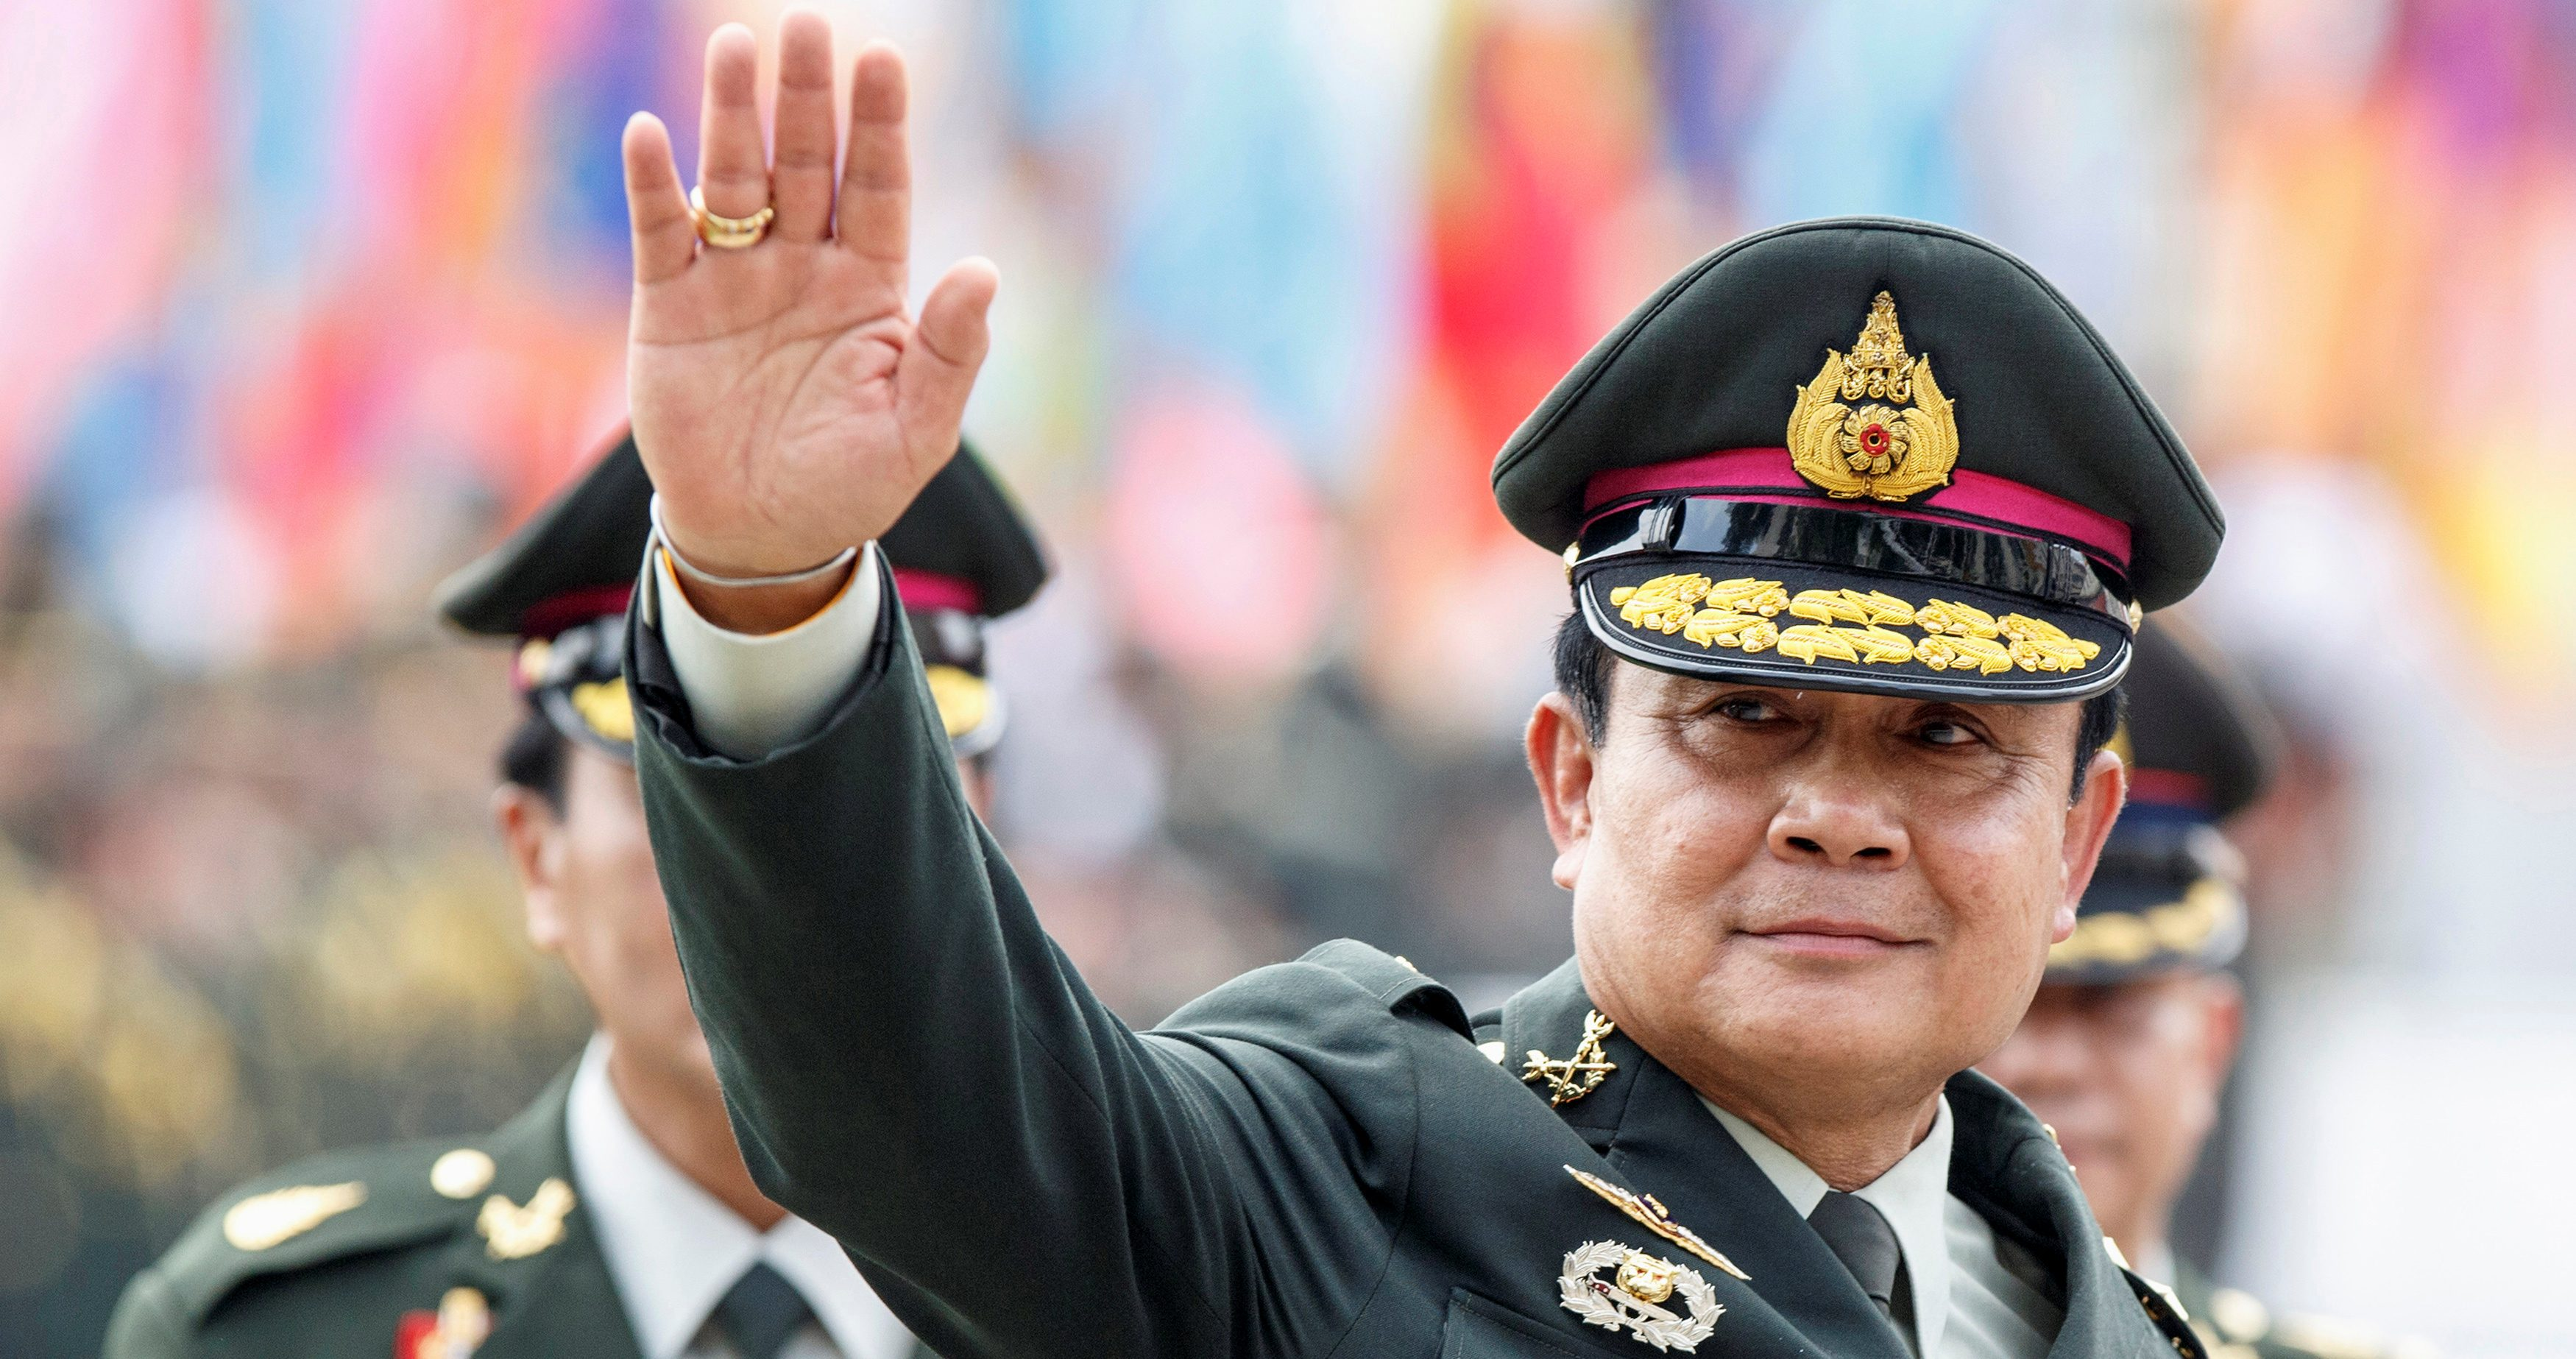 Thailand's prime minister Prayuth Chan-ocha waves after a handover ceremony for the new Royal Thai Army Chief at the Thai Army Headquarters in Bangkok, September 30, 2014.